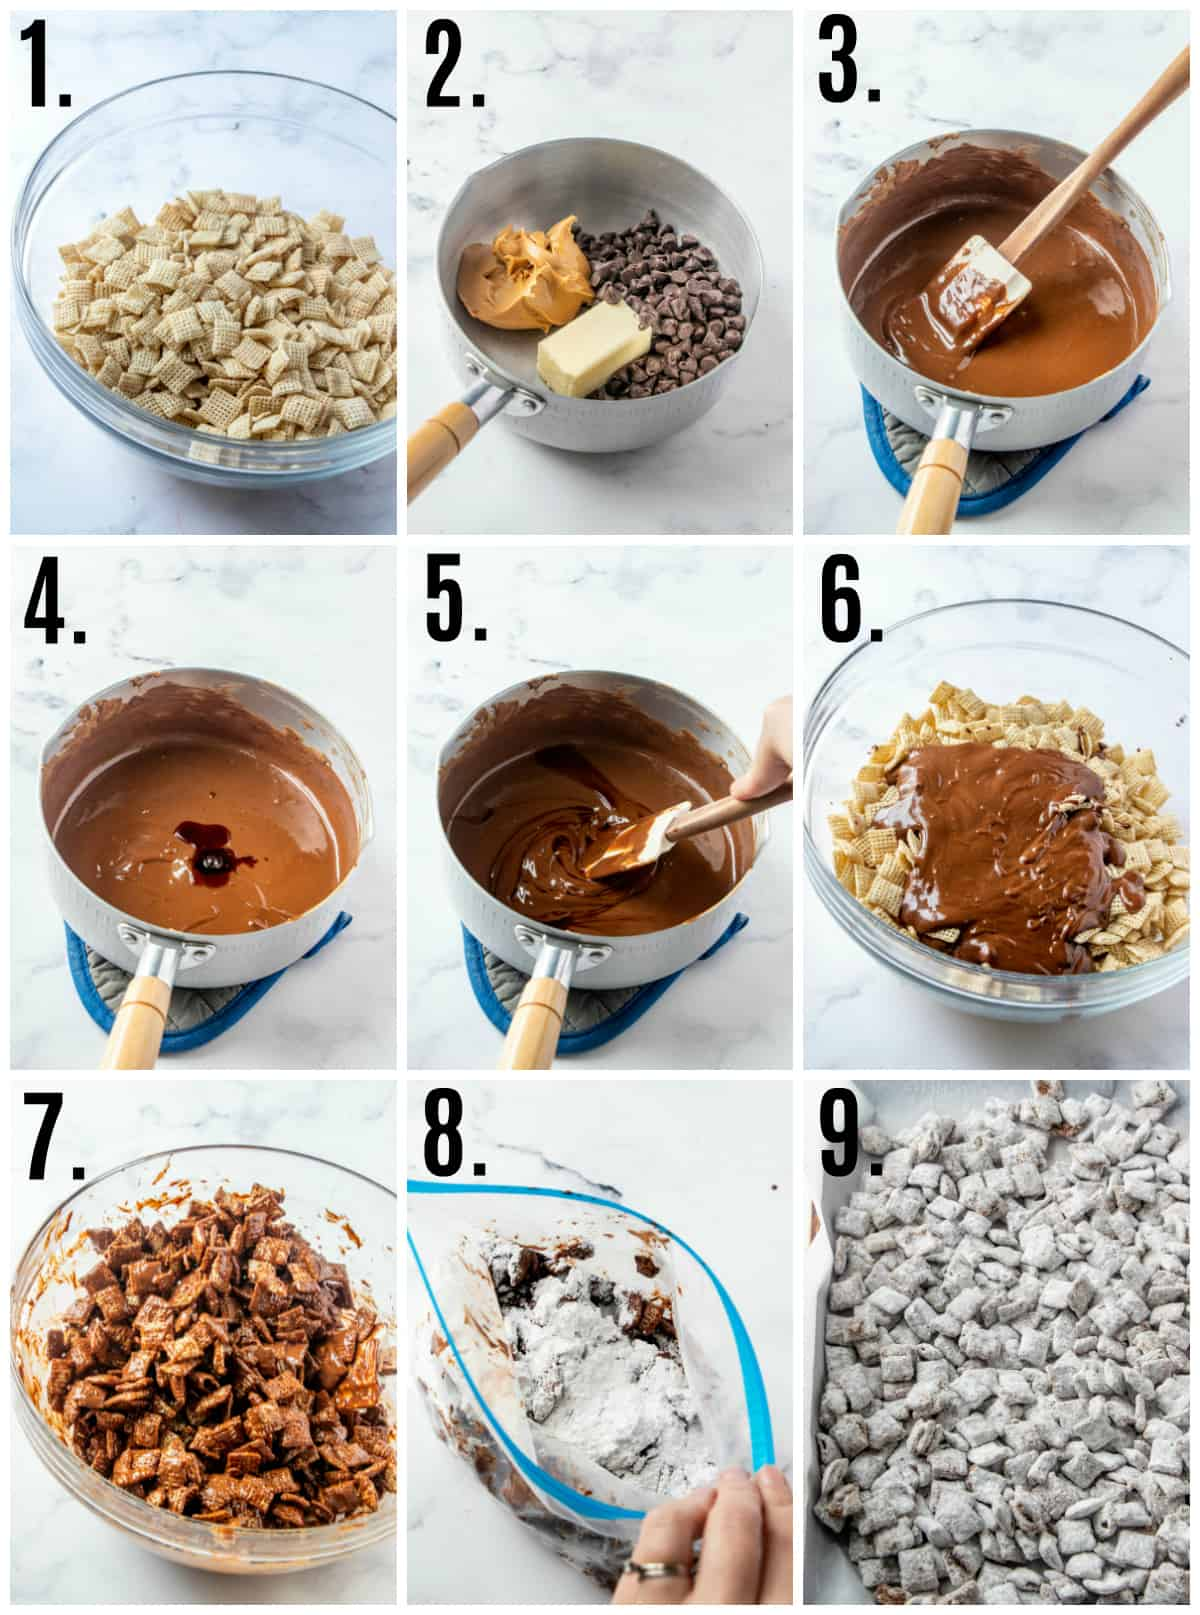 Step by step photos on how to make puppy chow